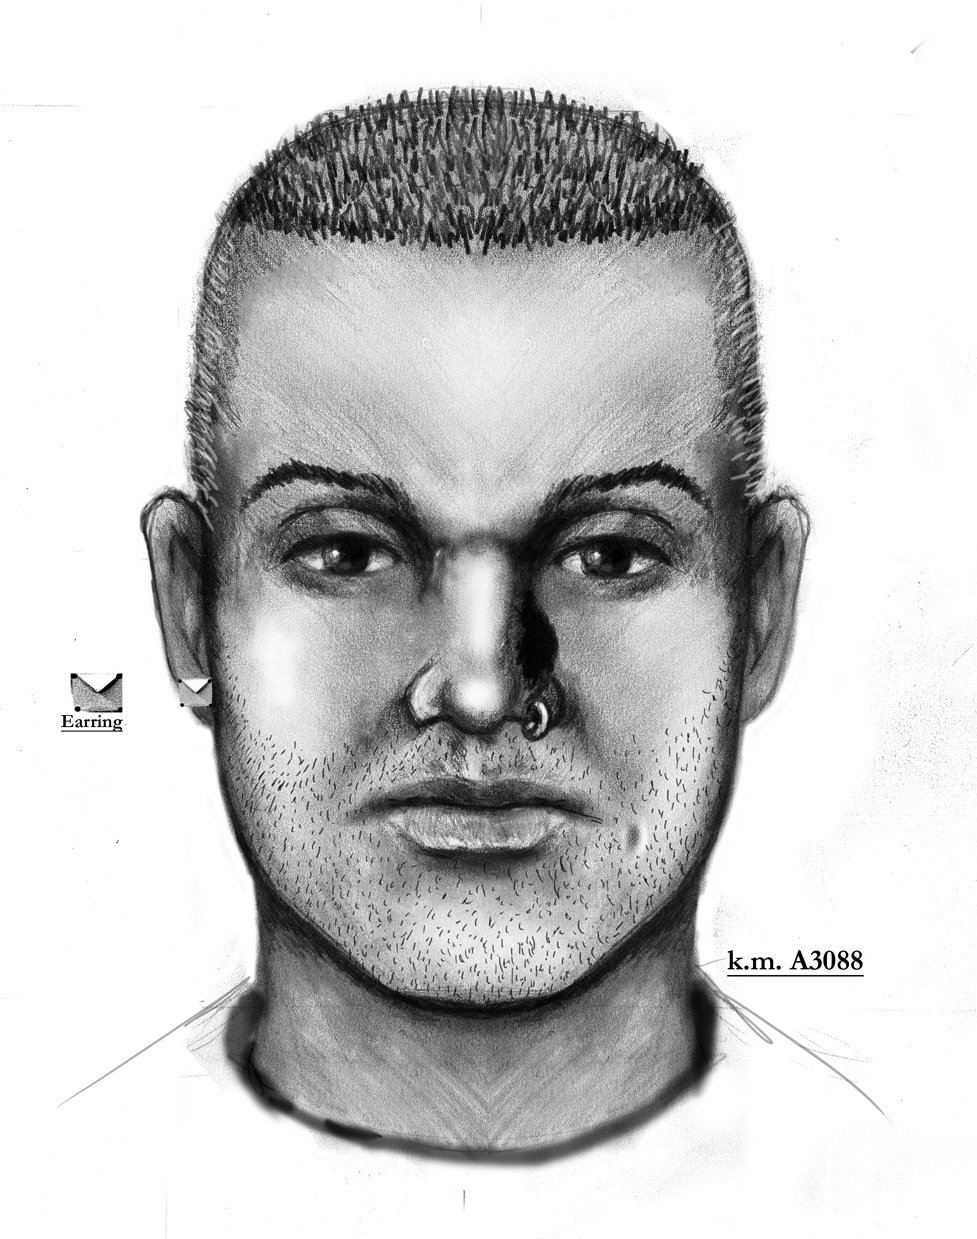 Description in the attempted kidnapping near 28th Avenue and Granada Road.